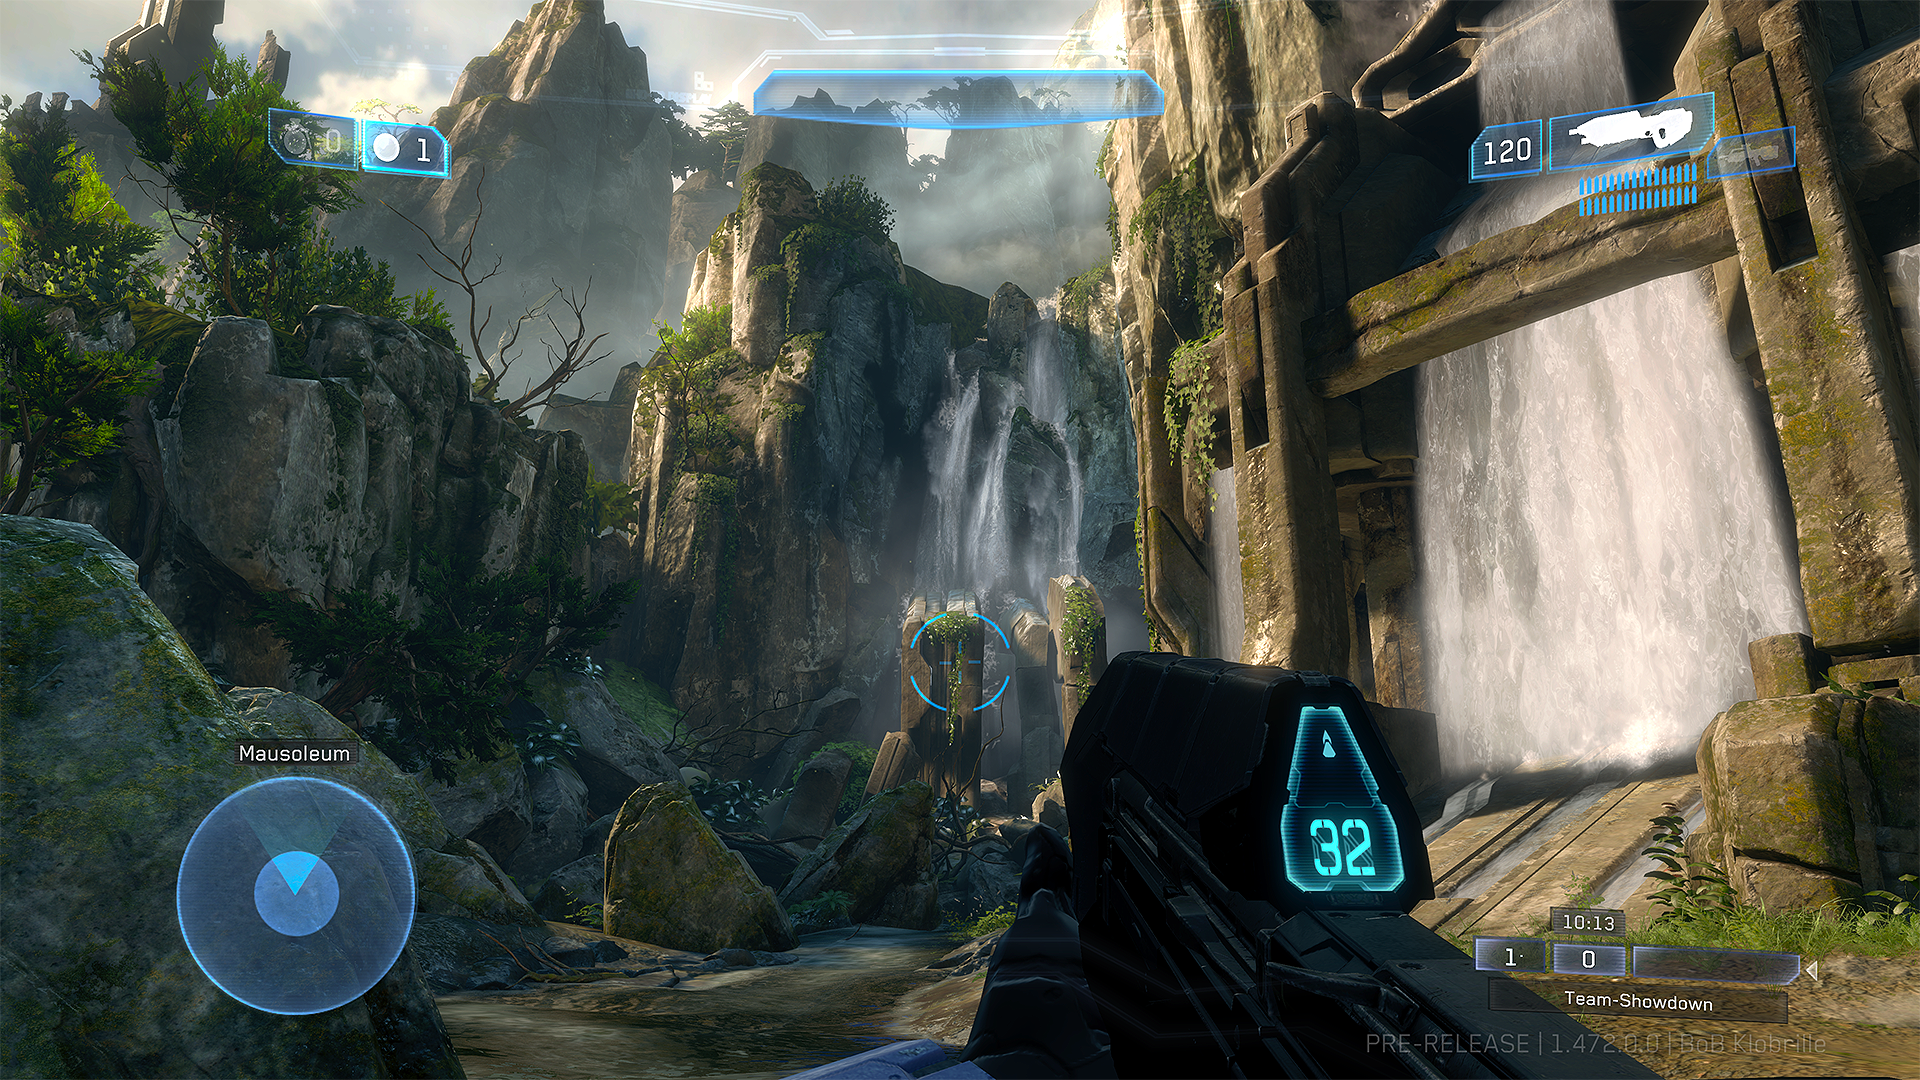 Halo 2: Anniversary is pretty much the most beautiful Halo